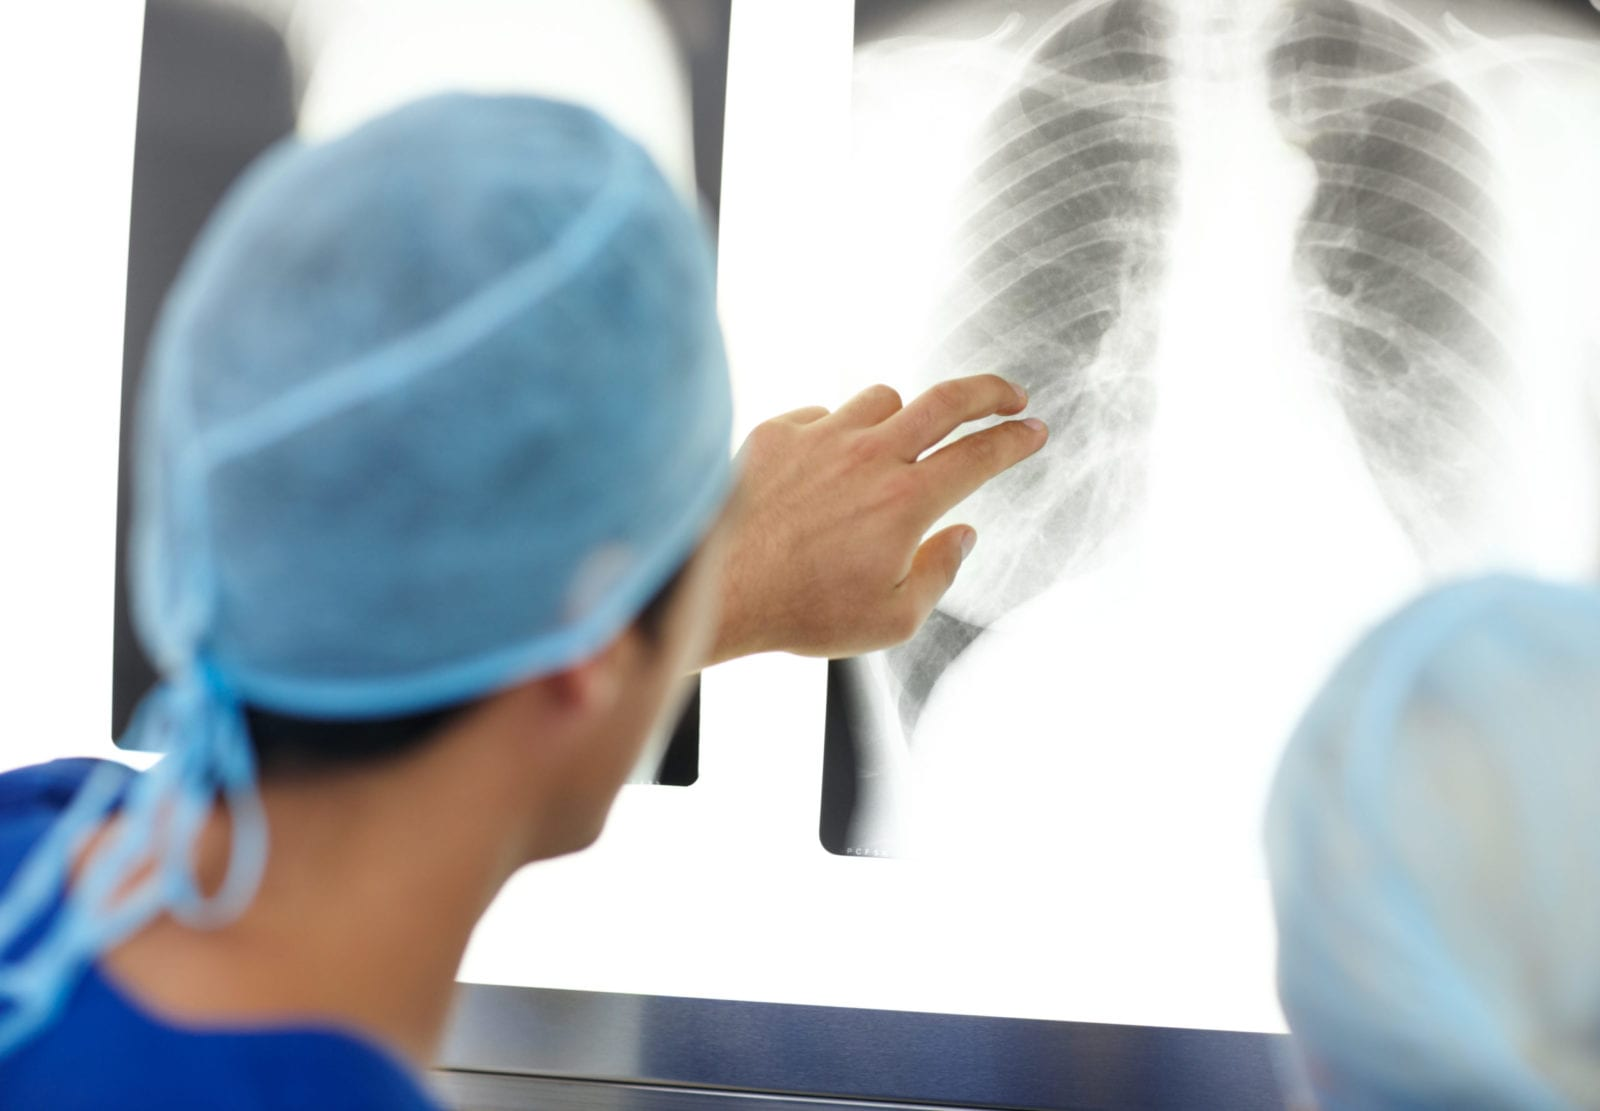 doctor-looking-closely-at-xray-of-lungs